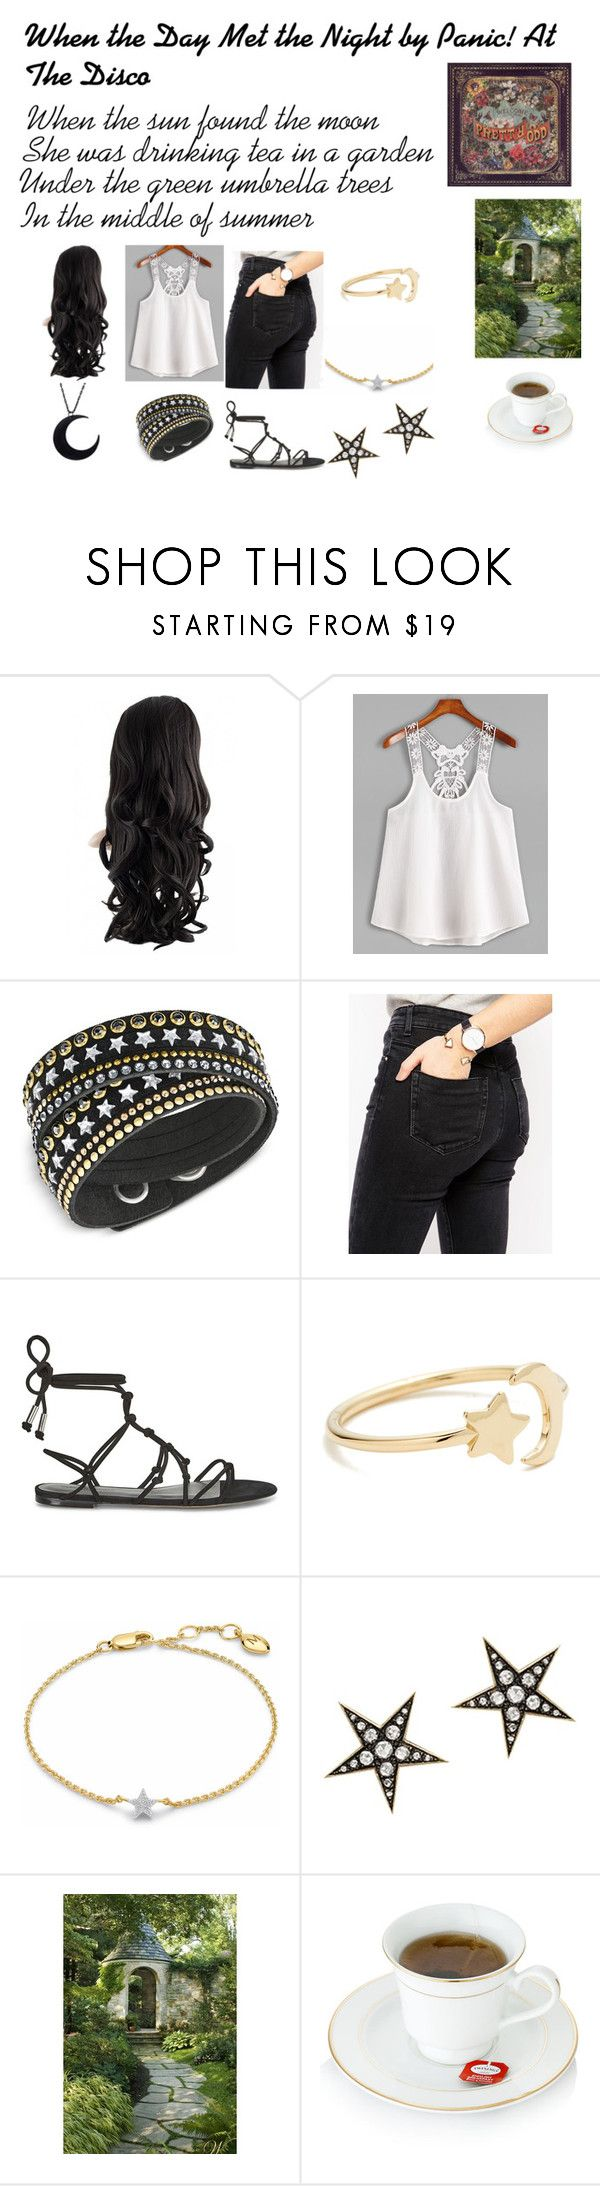 """When the Day Met the Night by Panic! At The Disco Outfit"" by pop-punk-fangirl ❤ liked on Polyvore featuring Swarovski, ASOS, Rebecca Minkoff, Ariel Gordon, London Road and Ødd."